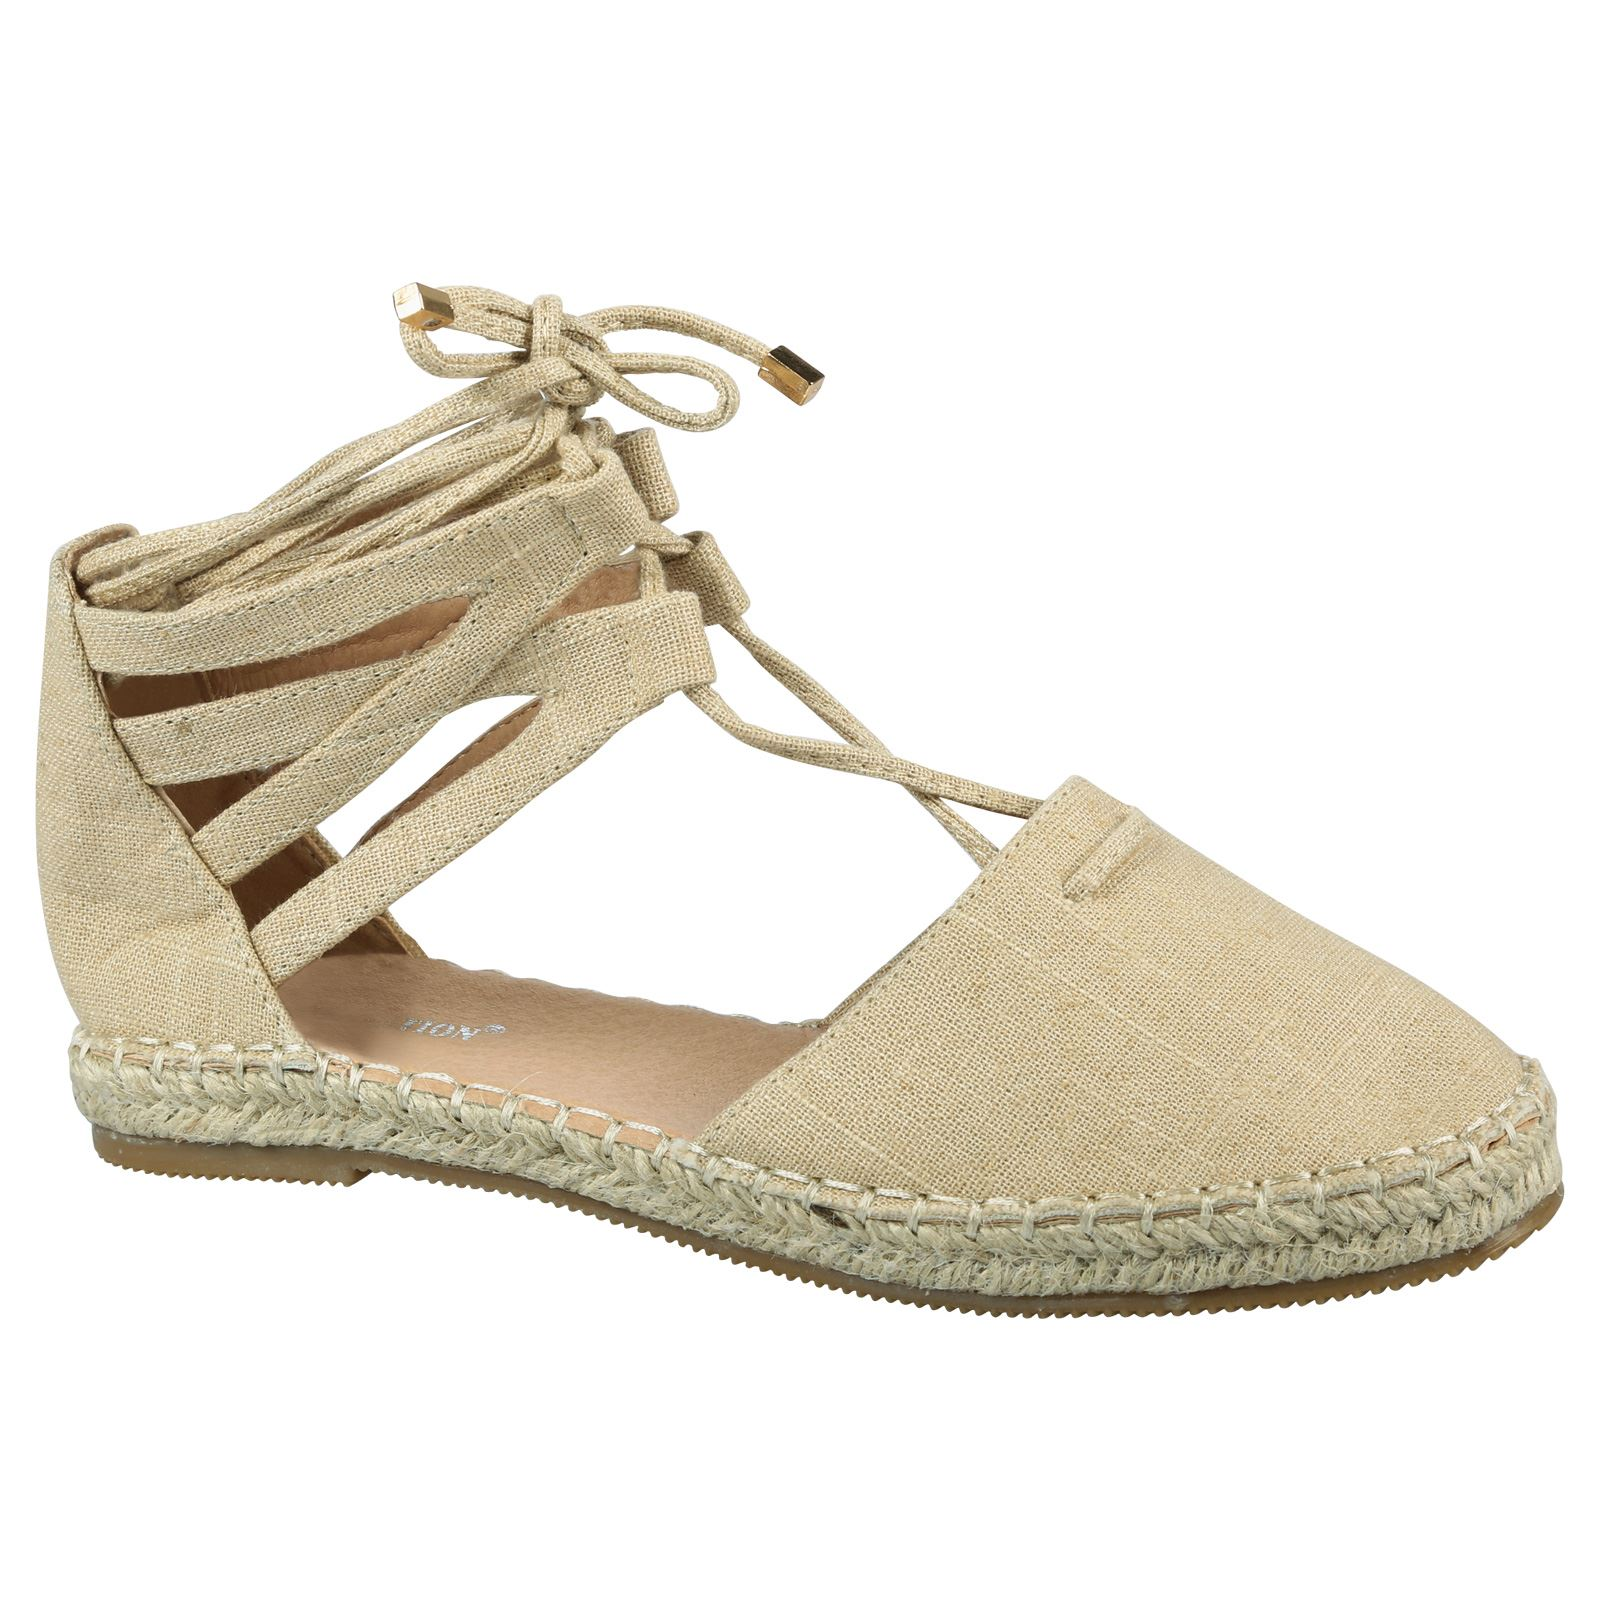 Flatform Sandals Cheap | Lace Up Espadrille Flats | Espadrilles Tie Up